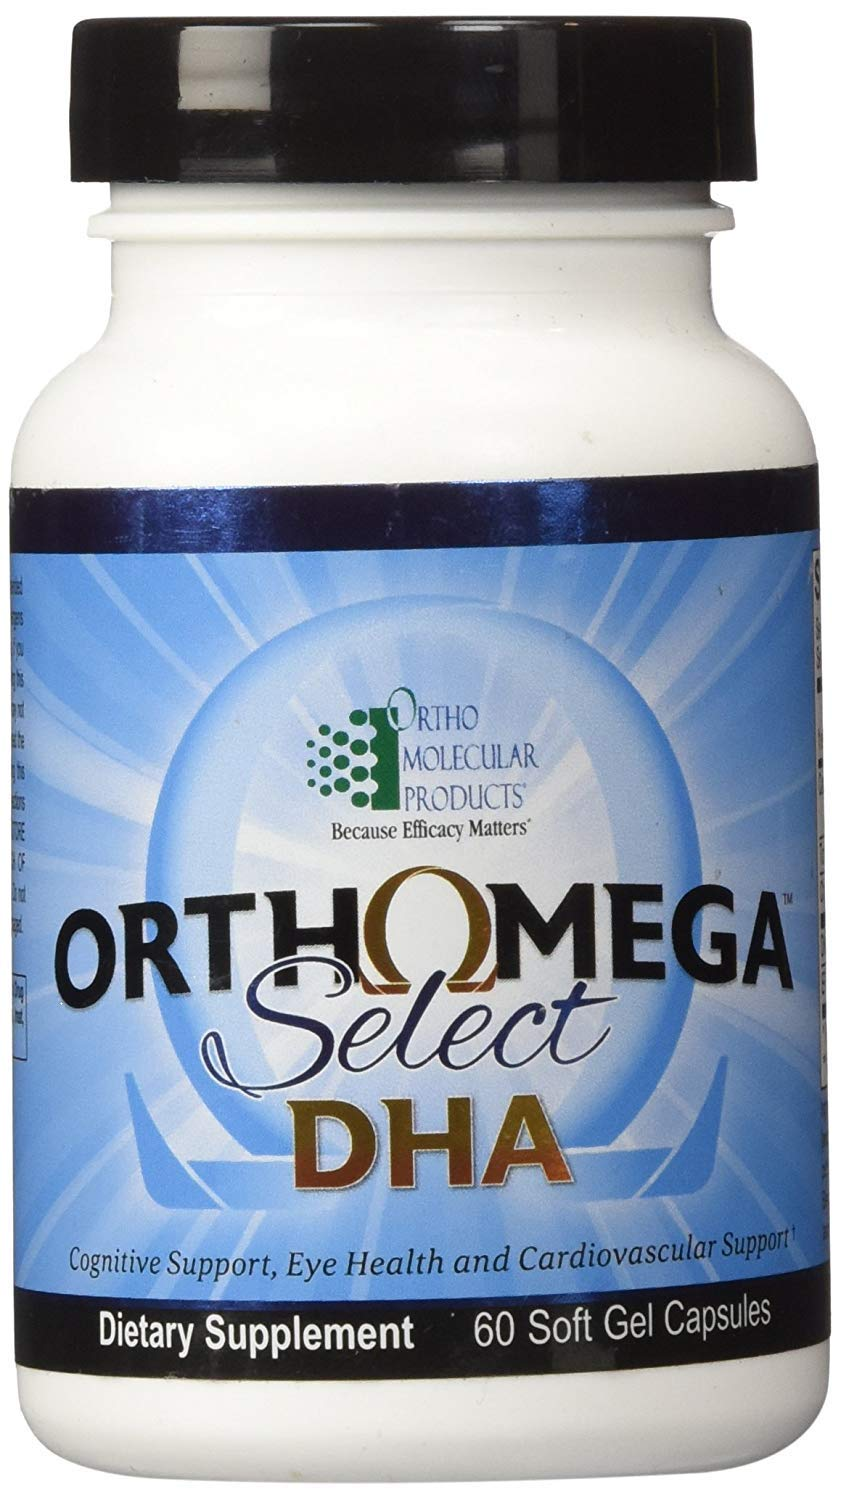 Ortho Molecular - Orthomega Select DHA- 60 Soft Gel Capsules by Ortho Molecular Products